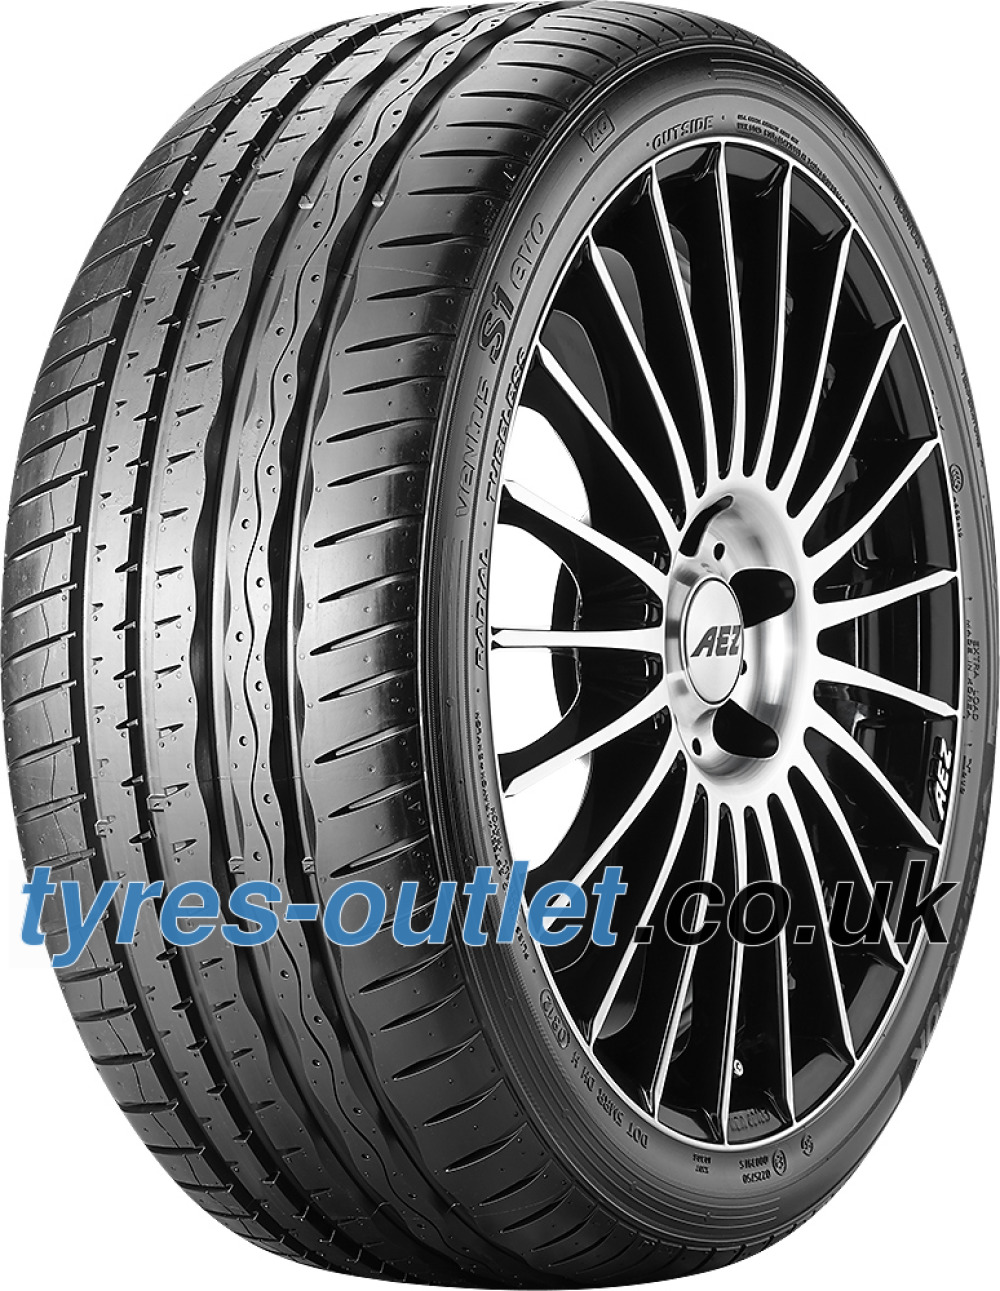 Hankook Ventus S1 Evo K107 ( 225/40 ZR18 92Y XL with rim protection (MFS) SBL )